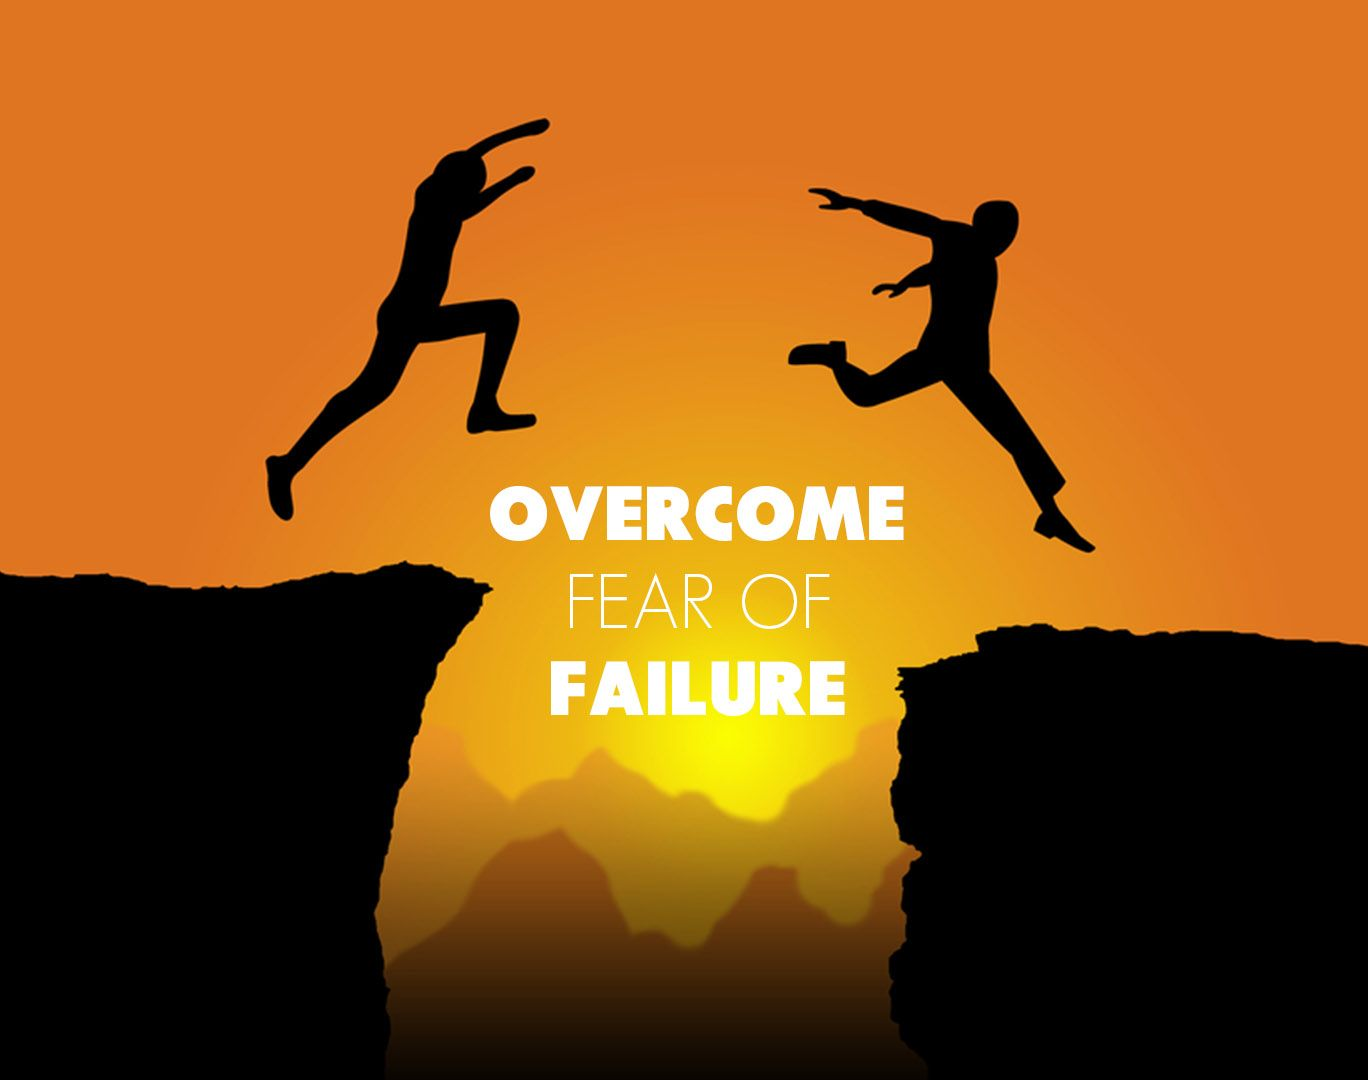 Overcoming Failure Quotes: How To Become More Creative?